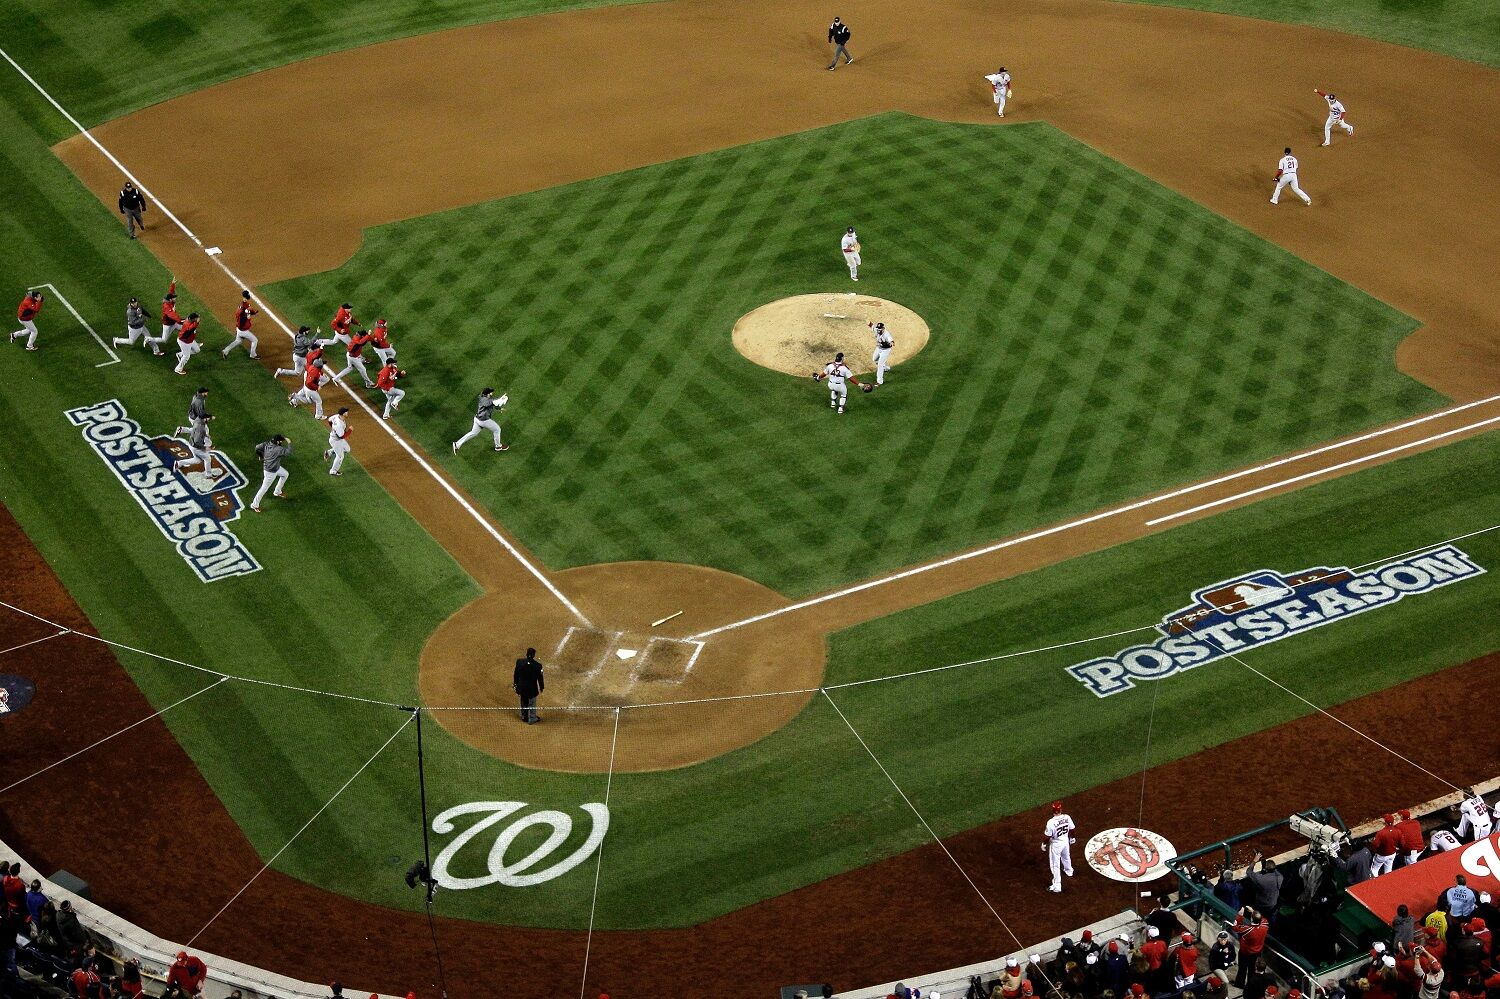 """<p><strong>5. Game 5, 2012</strong></p> <p>If the Caps had primed the pump to fuel the narrative of D.C. as a long-suffering sports town, the District's baseball team cranked open the valve on Oct. 12, 2012. Not 24 hours after the greatest moment in franchise history to date — Jayson Werth's epic <a href=""""https://www.youtube.com/watch?v=YifK0wy7QIc"""" target=""""_blank"""" rel=""""noopener"""">walk-off, game-winning, season-saving home run</a> — the Nats rocketed out to a 6-0 lead against Adam Wainwright and the St. Louis Cardinals, only to watch the life drip out of the game and the innocence of the first winning season in Washington. It was all capped by a nightmarish ninth inning that seemed to inform <a href=""""https://wtop.com/sports-columns/2017/10/incredible-impossible-inevitable-yes-the-nats-lost-in-game-5-again/"""" target=""""_blank"""" rel=""""noopener"""">every future Game 5 and playoff elimination to follow</a>. It was the game that had to be overcome, but never was, for seven more years.</p>"""